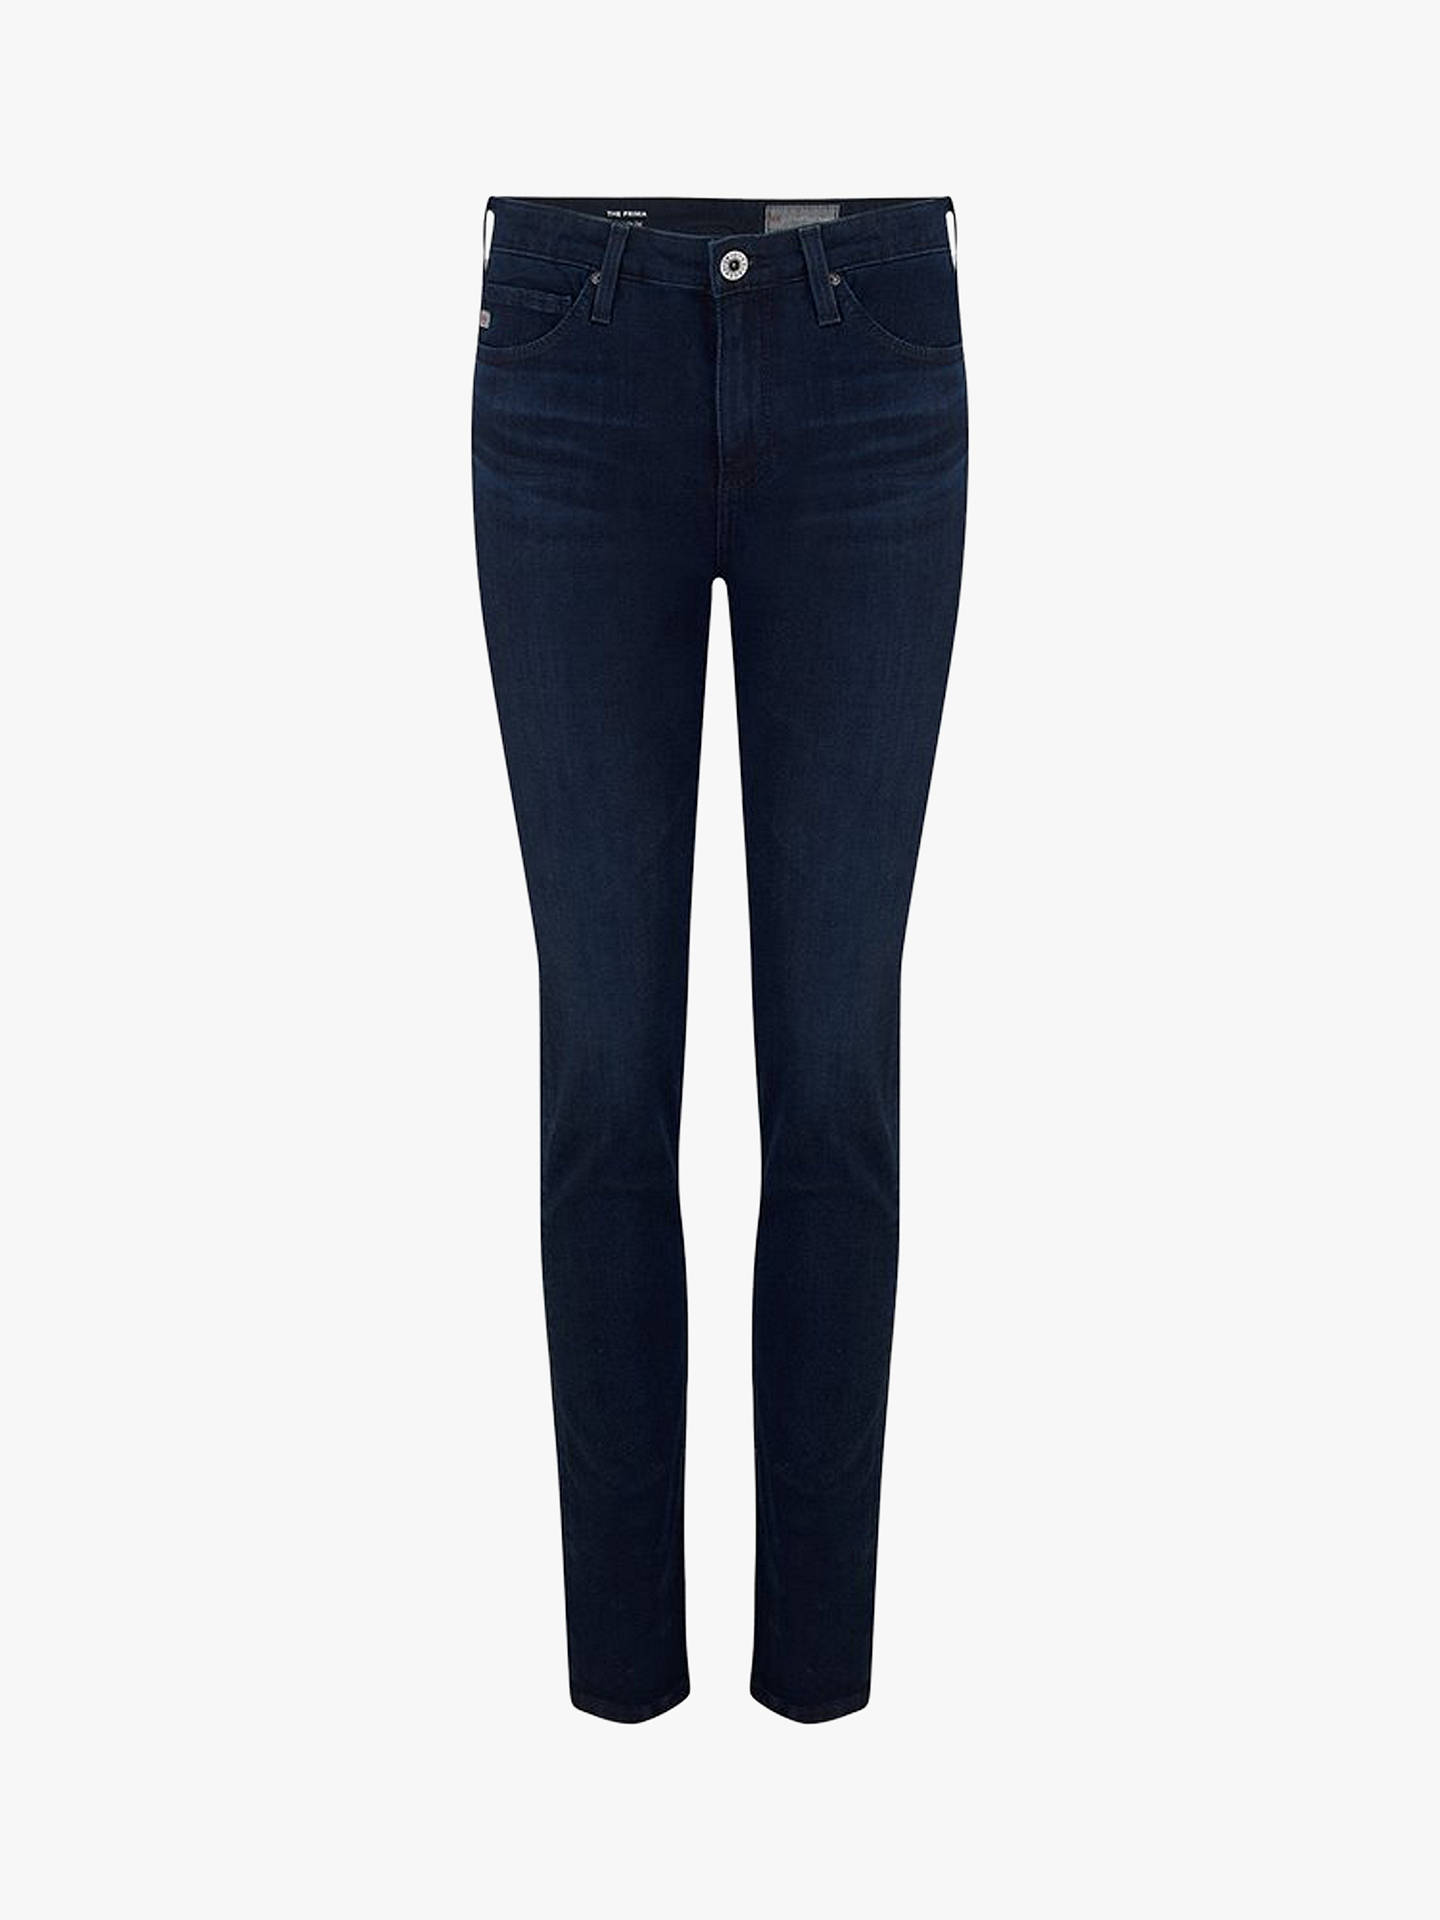 Buy AG The Prima Cigarette Jeans, Indigo Excess, 24 Online at johnlewis.com